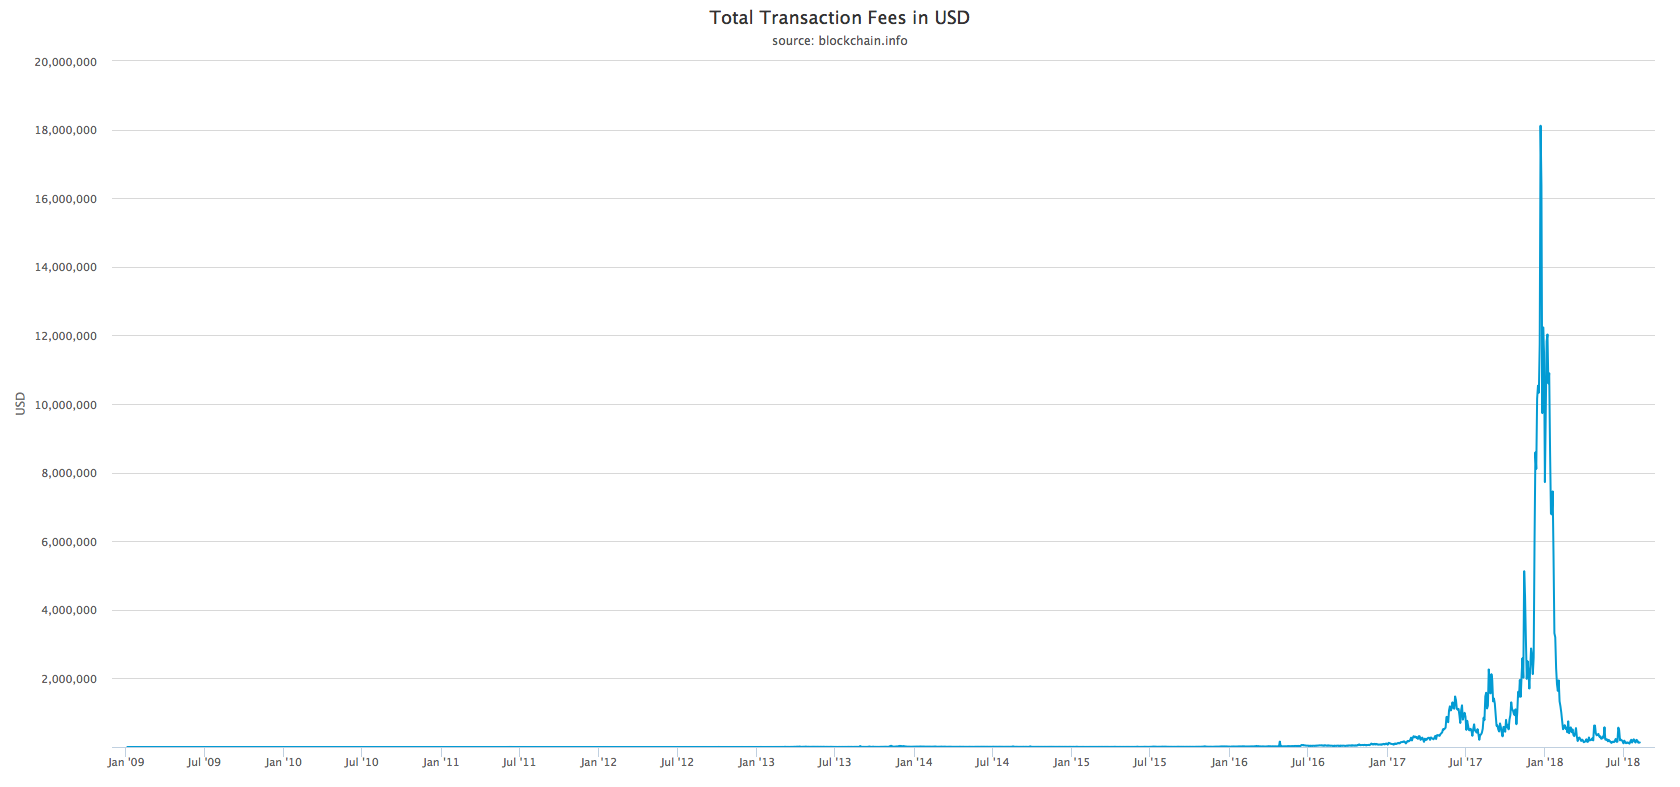 "Meanwhile, transaction cost is even lower than it was before during the 2017 bull run. I guess now you understand why it is less expensive to use it for international trades: transaction speed - 20-30 minutes, transaction cost - 0.40 cents when sending $100 or $1,000,000. And of course security of payment.  What does everything from the above should mean for a retailer investor?  Make sure you apply critical thinking whenever you are making your next deposit in a bank. Accumulate alternative assets. And make sure you know about BTC. Nobody says you have to buy it. It's all under your discretion. Most people find execuses calling it ""scam"" or ""bubble"", but I bet only 2 out of 10 know what ""https"" means when they are typing their personal blog address or website. So why people who say ""I don't believe in BTC!"", ""I don't know how it works!"" or ""Why is it better than my bank?"" are putting a veto on the Digital Gold that will help society to survive in the upcoming recession?   Bonus.   Please, share your feedback. We will be glad to include your observations, charts and critics in this article below. Make sure it has all appropriate links on sources. On our end we will try to update this article when it's required.  P.S. I bet you'll find a lot of typos. Numbers that's what matters. Everything else is easy to adjust.  Thank you.  Regards,  Paul Savchuk,  CEO at EQBM Inc.  __________________________________________________________________________________________________________________________________   DISCLAIMER    INVESTING IN CRYPTOCURRENCIES AND OTHER INITIAL COIN OFFERINGS (""ICOS"") IS HIGHLY RISKY AND SPECULATIVE, AND THIS ARTICLE IS NOT A RECOMMENDATION BY CRYPTOCURRENCY CAPITAL OR THE WRITER TO INVEST IN CRYPTOCURRENCIES OR OTHER ICOS. SINCE EACH INDIVIDUAL'S SITUATION IS UNIQUE, A QUALIFIED PROFESSIONAL SHOULD ALWAYS BE CONSULTED BEFORE MAKING ANY FINANCIAL DECISIONS. INVESTOPEDIA MAKES NO REPRESENTATIONS OR WARRANTIES AS TO THE ACCURACY OR TIMELINESS OF THE INFORMATION CONTAINED HEREIN. AS OF THE DATE THIS ARTICLE WAS WRITTEN, THE AUTHOR OWNS CRYPTOCURRENCY.    WITH THIS CONTENT CRYPTOCURRENCY CAPITAL LLC OR ITS AFFILIATES DO NOT PROVIDE INVESTMENT, TAX, LEGAL OR ACCOUNTING ADVICE. THIS MATERIAL HAS BEEN PREPARED FOR INFORMATIONAL PURPOSES ONLY AND IS NOT INTENDED TO PROVIDE, AND SHOULD NOT BE RELIED ON FOR, TAX, LEGAL, ACCOUNTING OR INVESTMENT ADVICE. YOU SHOULD CONSULT YOUR OWN INVESTMENT, TAX, LEGAL AND ACCOUNTING ADVISORS BEFORE ENGAGING IN ANY TRANSACTION AT YOUR OWN RISK.    CONFLICTS OF INTEREST    GIVEN THE NATURE OF THE COMPANY'S BUSINESS MODEL, IT IS NOT POSSIBLE TO FORESEE AND PREVENT ALL POSSIBLE CONFLICTS OF INTEREST THAT MIGHT ARISE OVER THE LIFESPAN OF THE COMPANY. AT THE TIME MATERIAL WAS PUBLISHED, CRYPTOCURRENCY CAPITAL LLC, ITS AFFILIATES, OR ITS PRINCIPALS, MAY HOLD LONG/SHORT POSITIONS IN THIS PARTICULAR COIN."